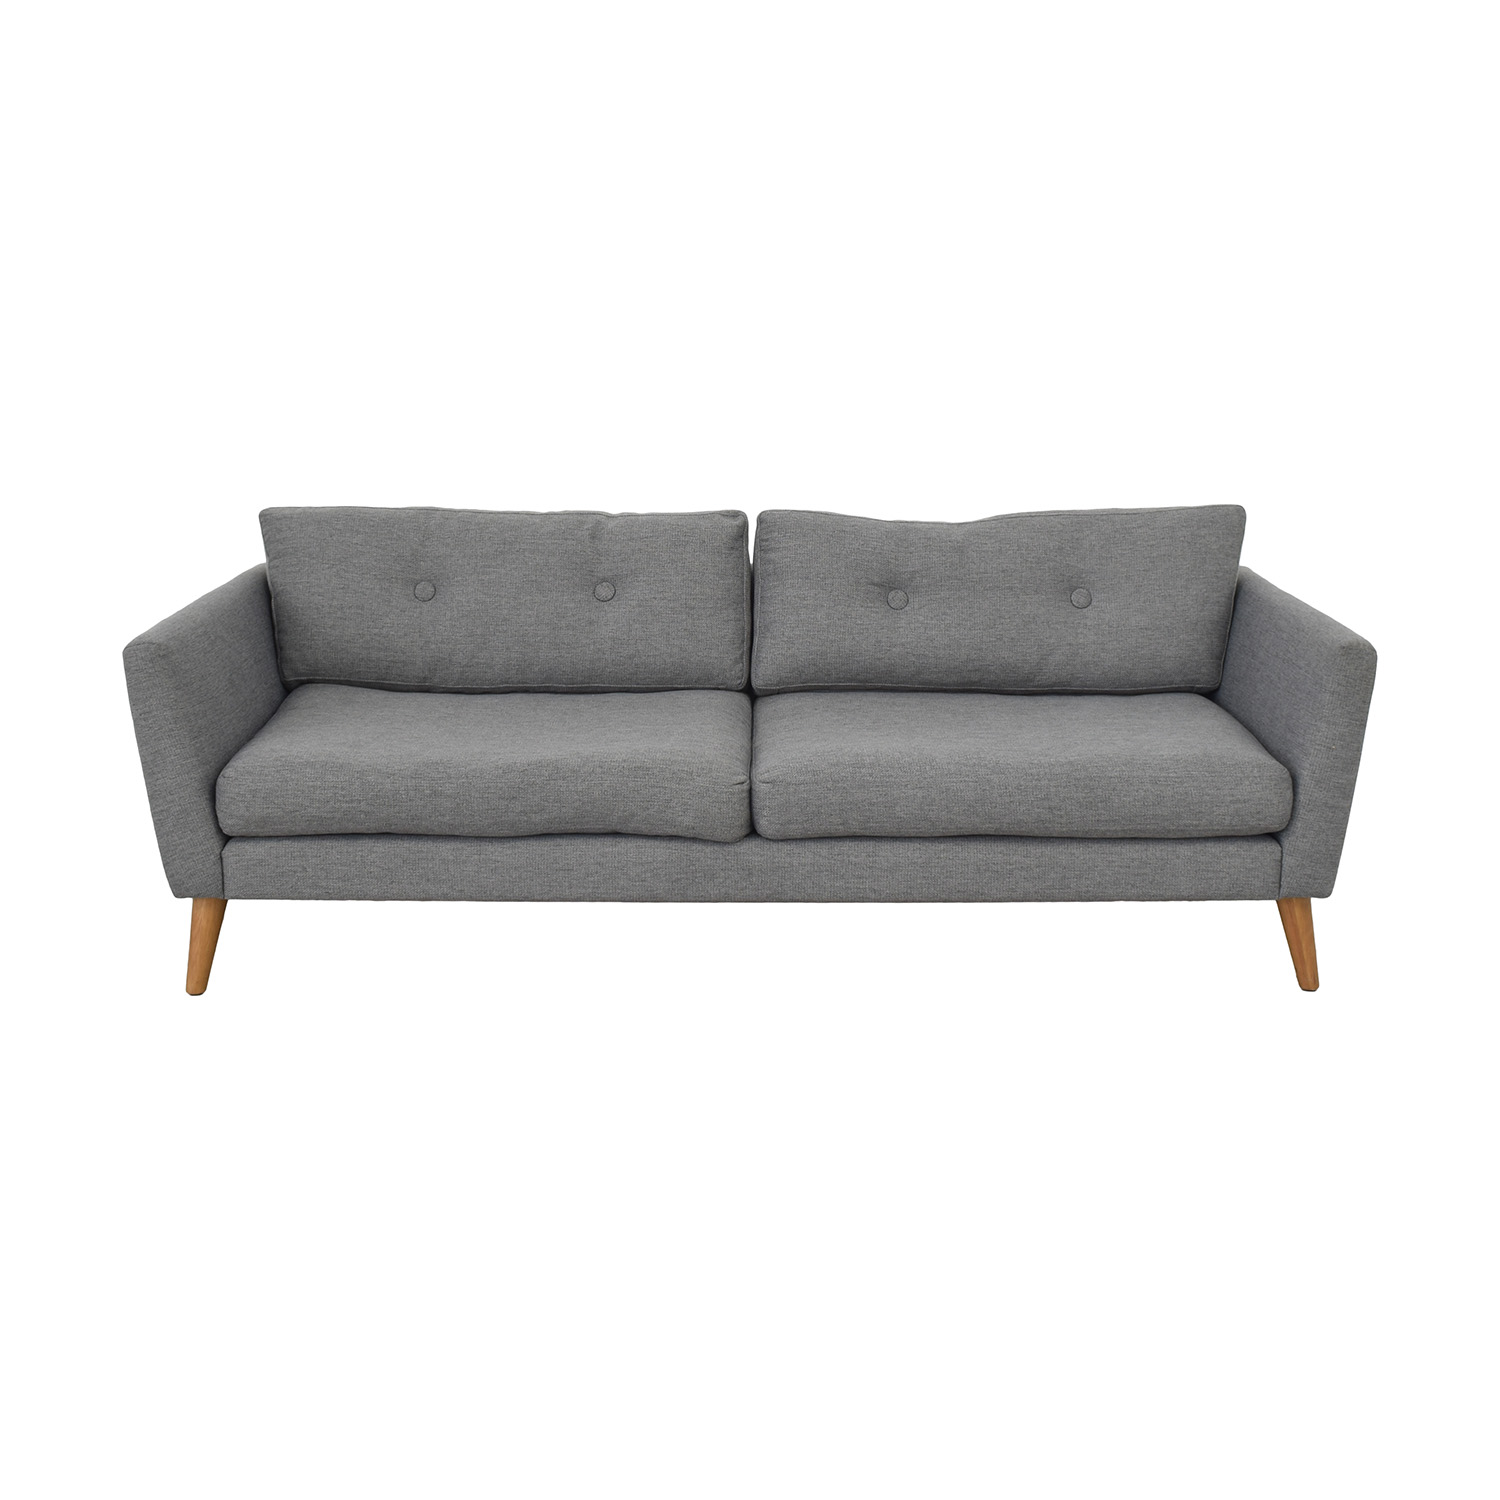 Article Article Emil Two Cushion Sofa second hand